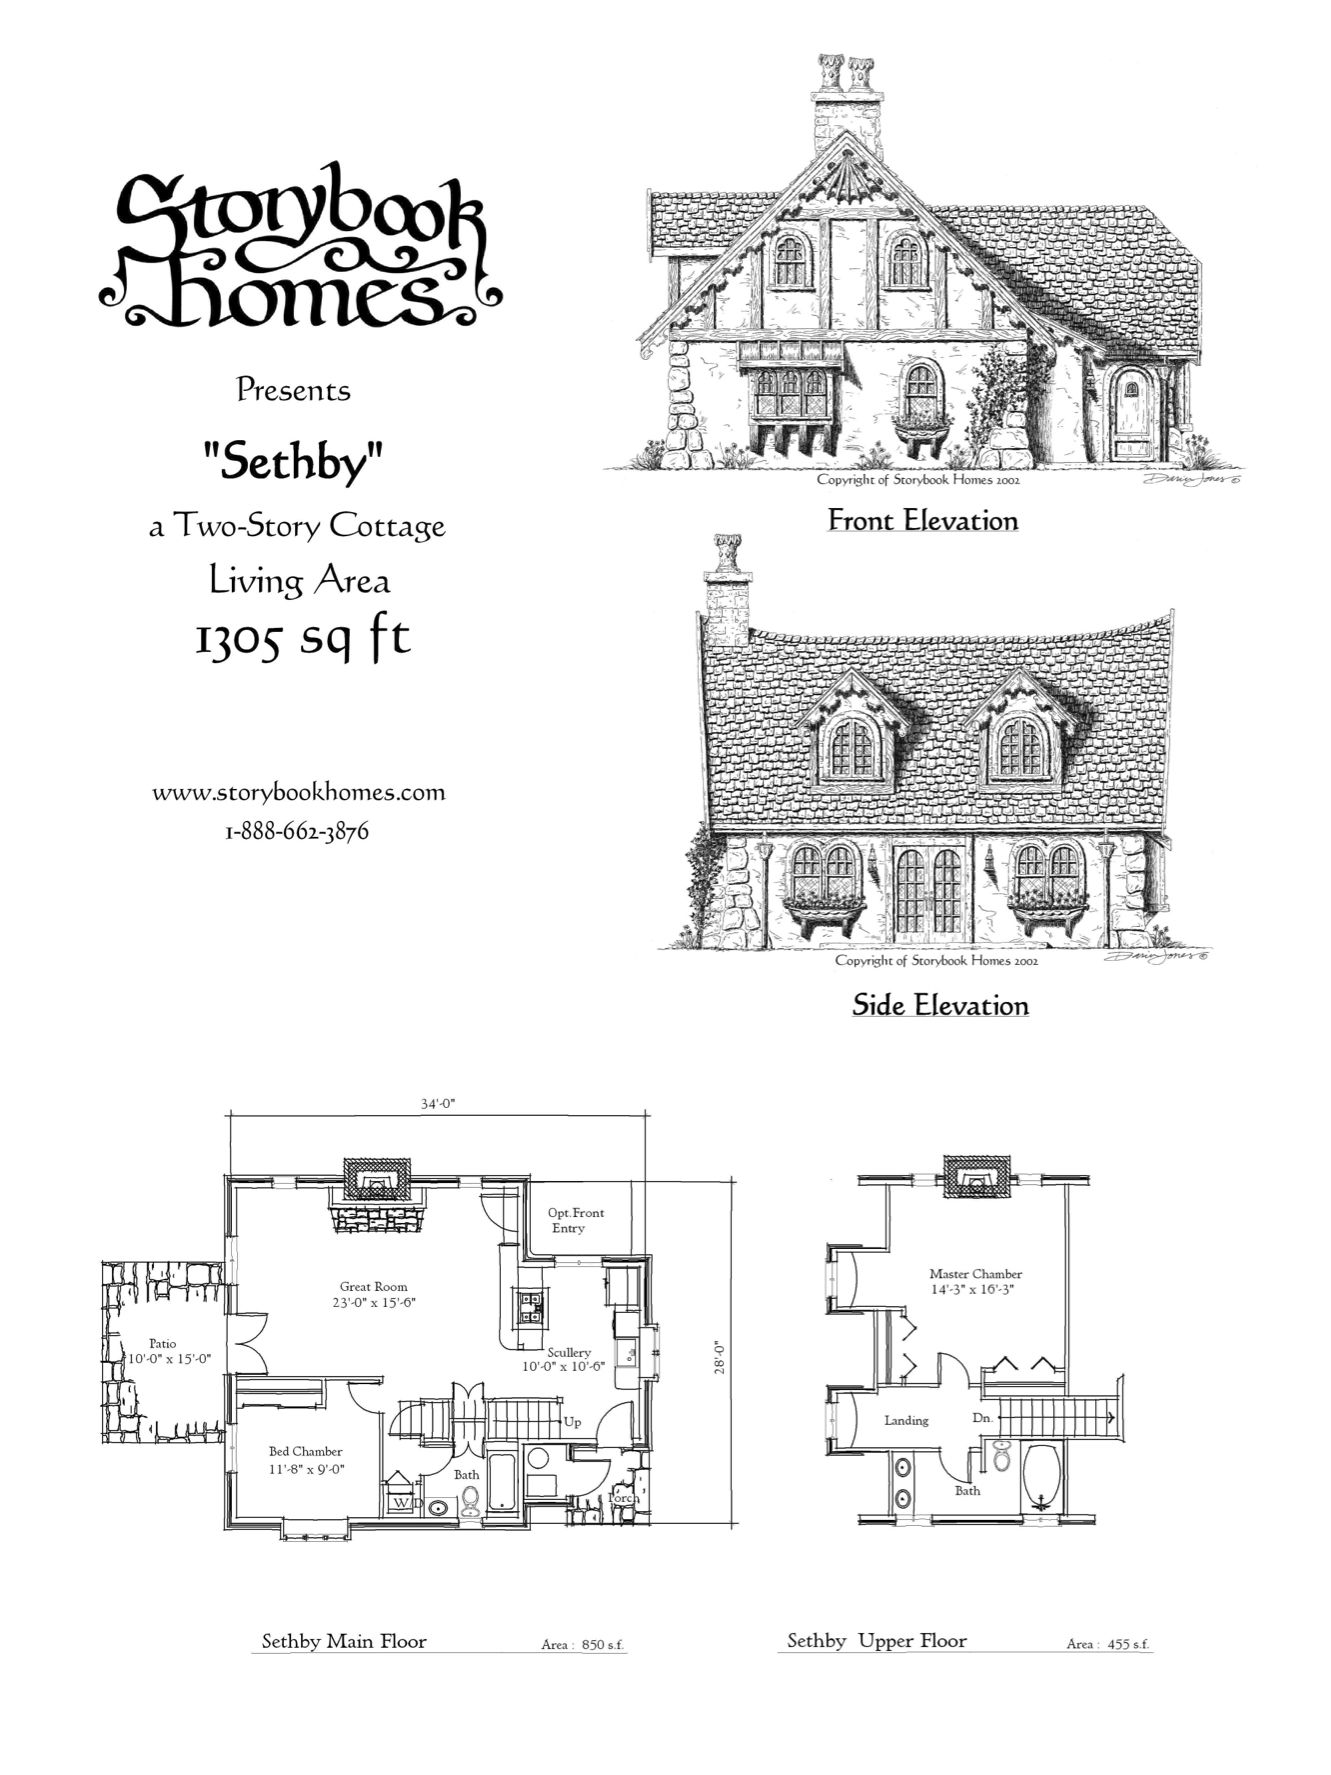 39 sethby 39 houseplan via storybook homes house plans Storybook cottages floor plans